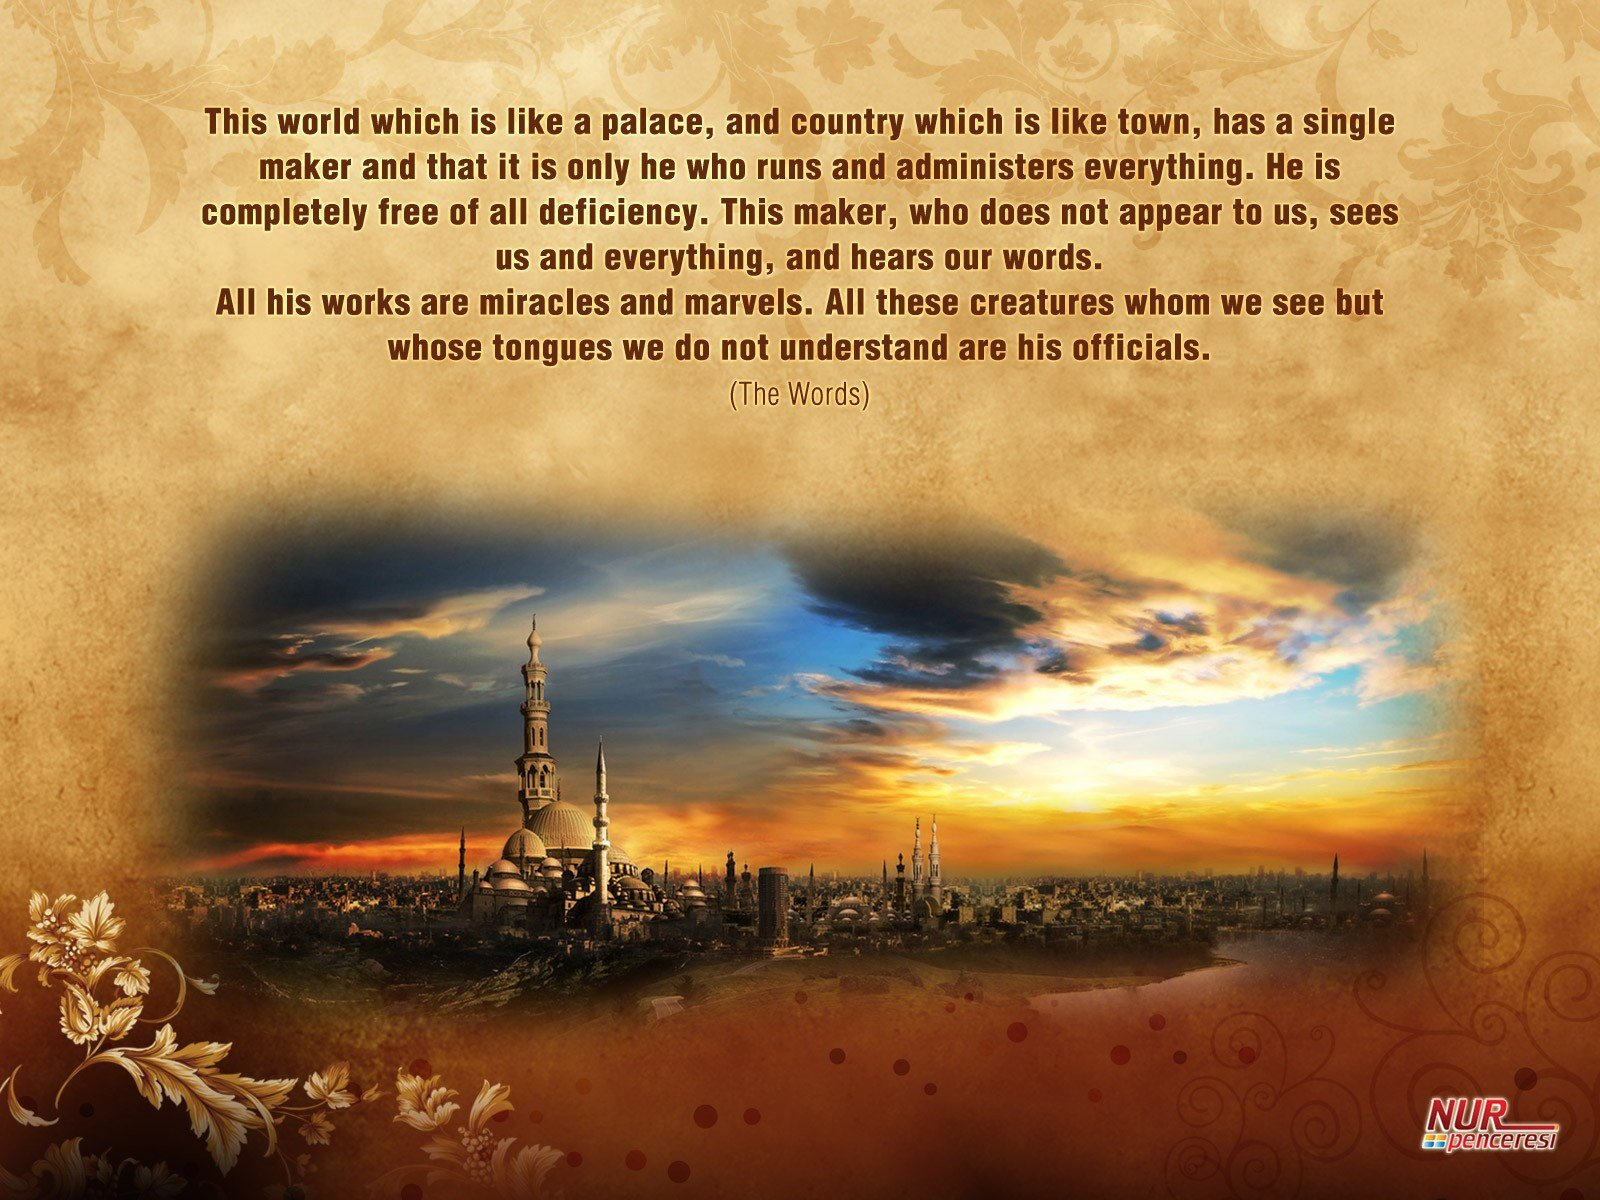 text quotes religion books Islam Allah mosques wallpaper background 1600x1200